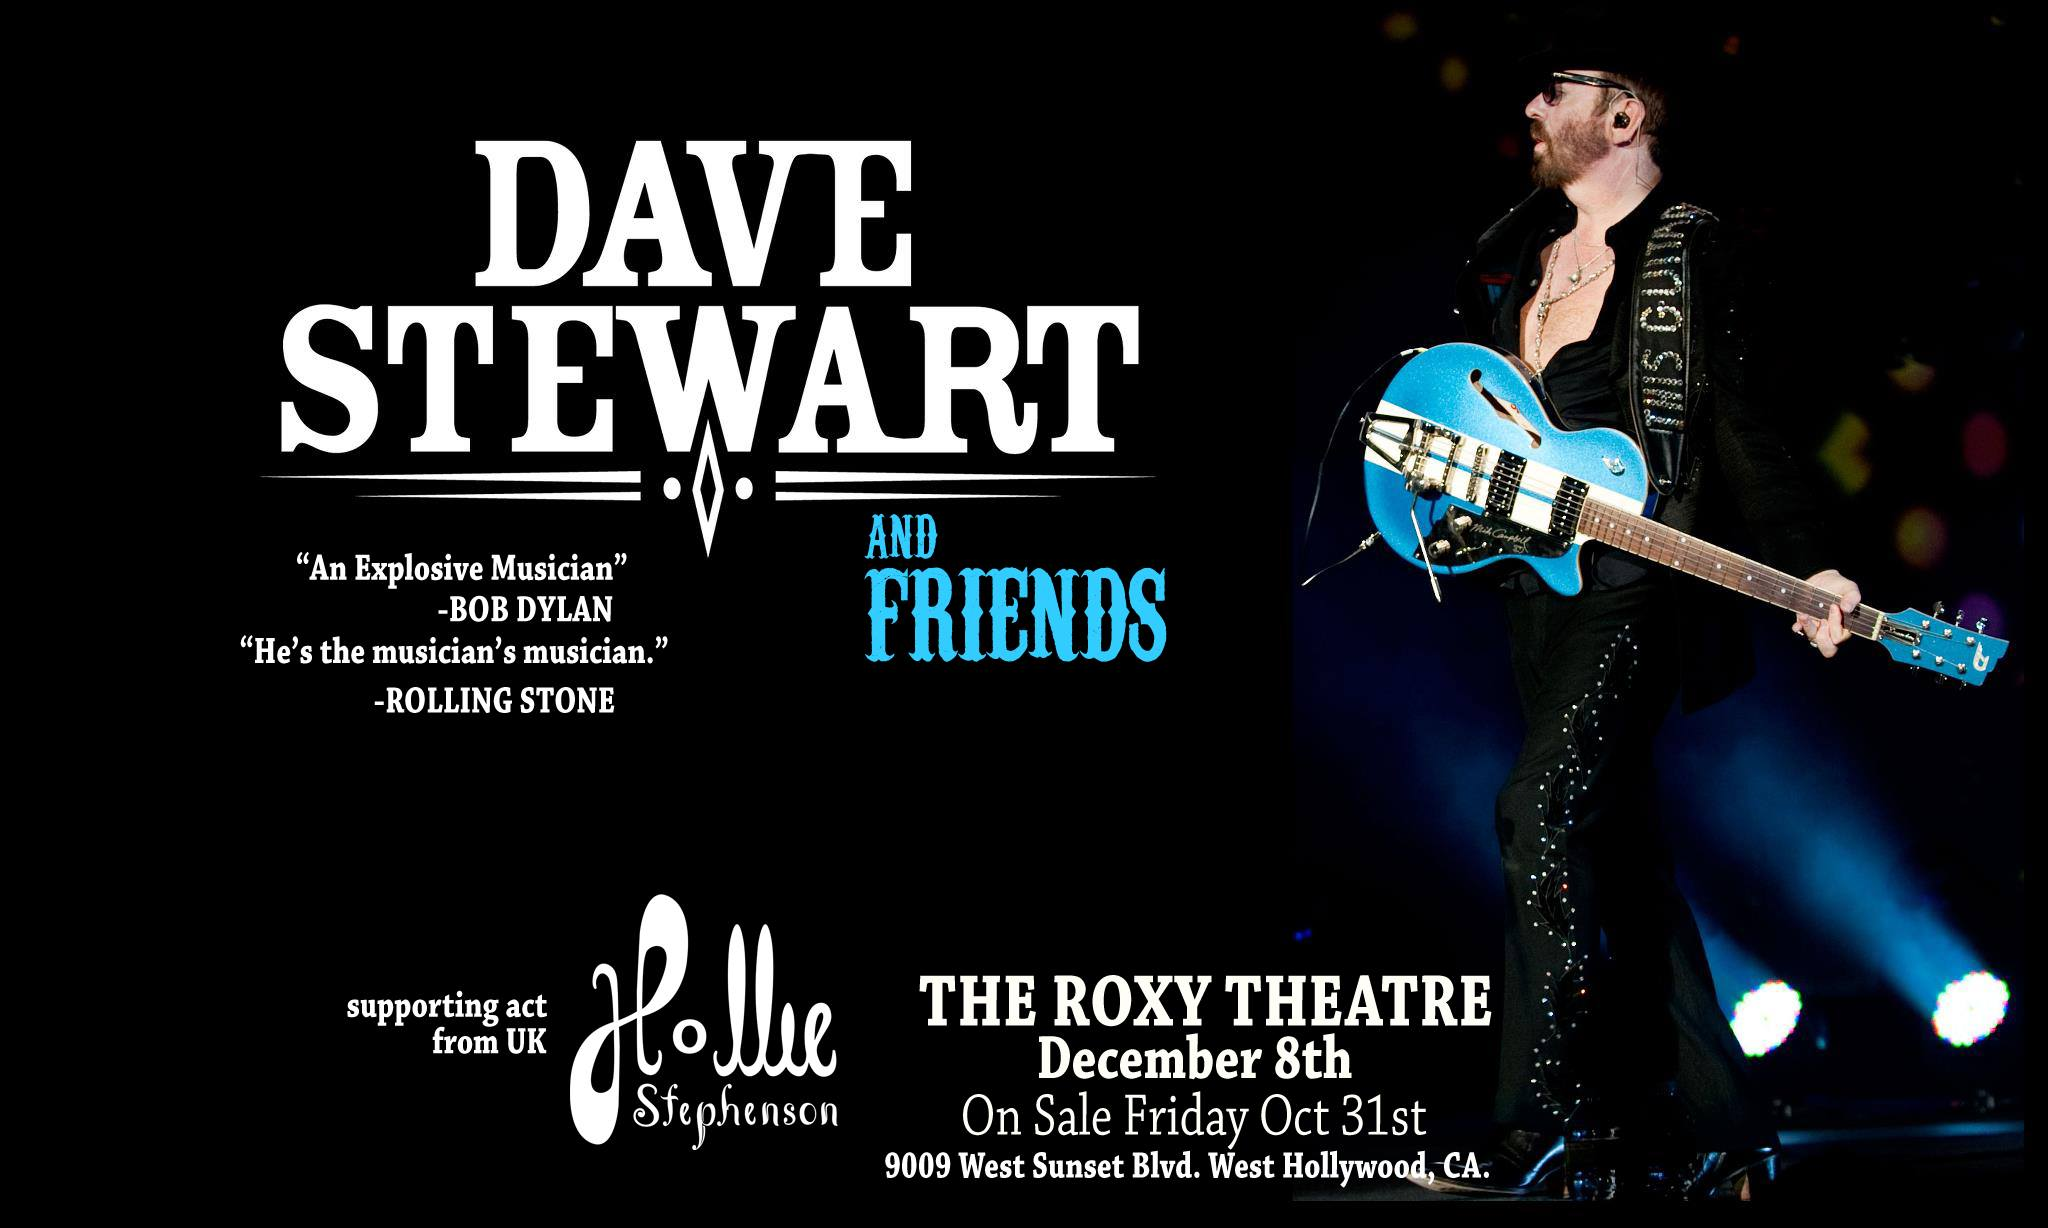 Catch Dave Stewart live at The Roxy this evening in Los Angeles along with some fabulous new artists!